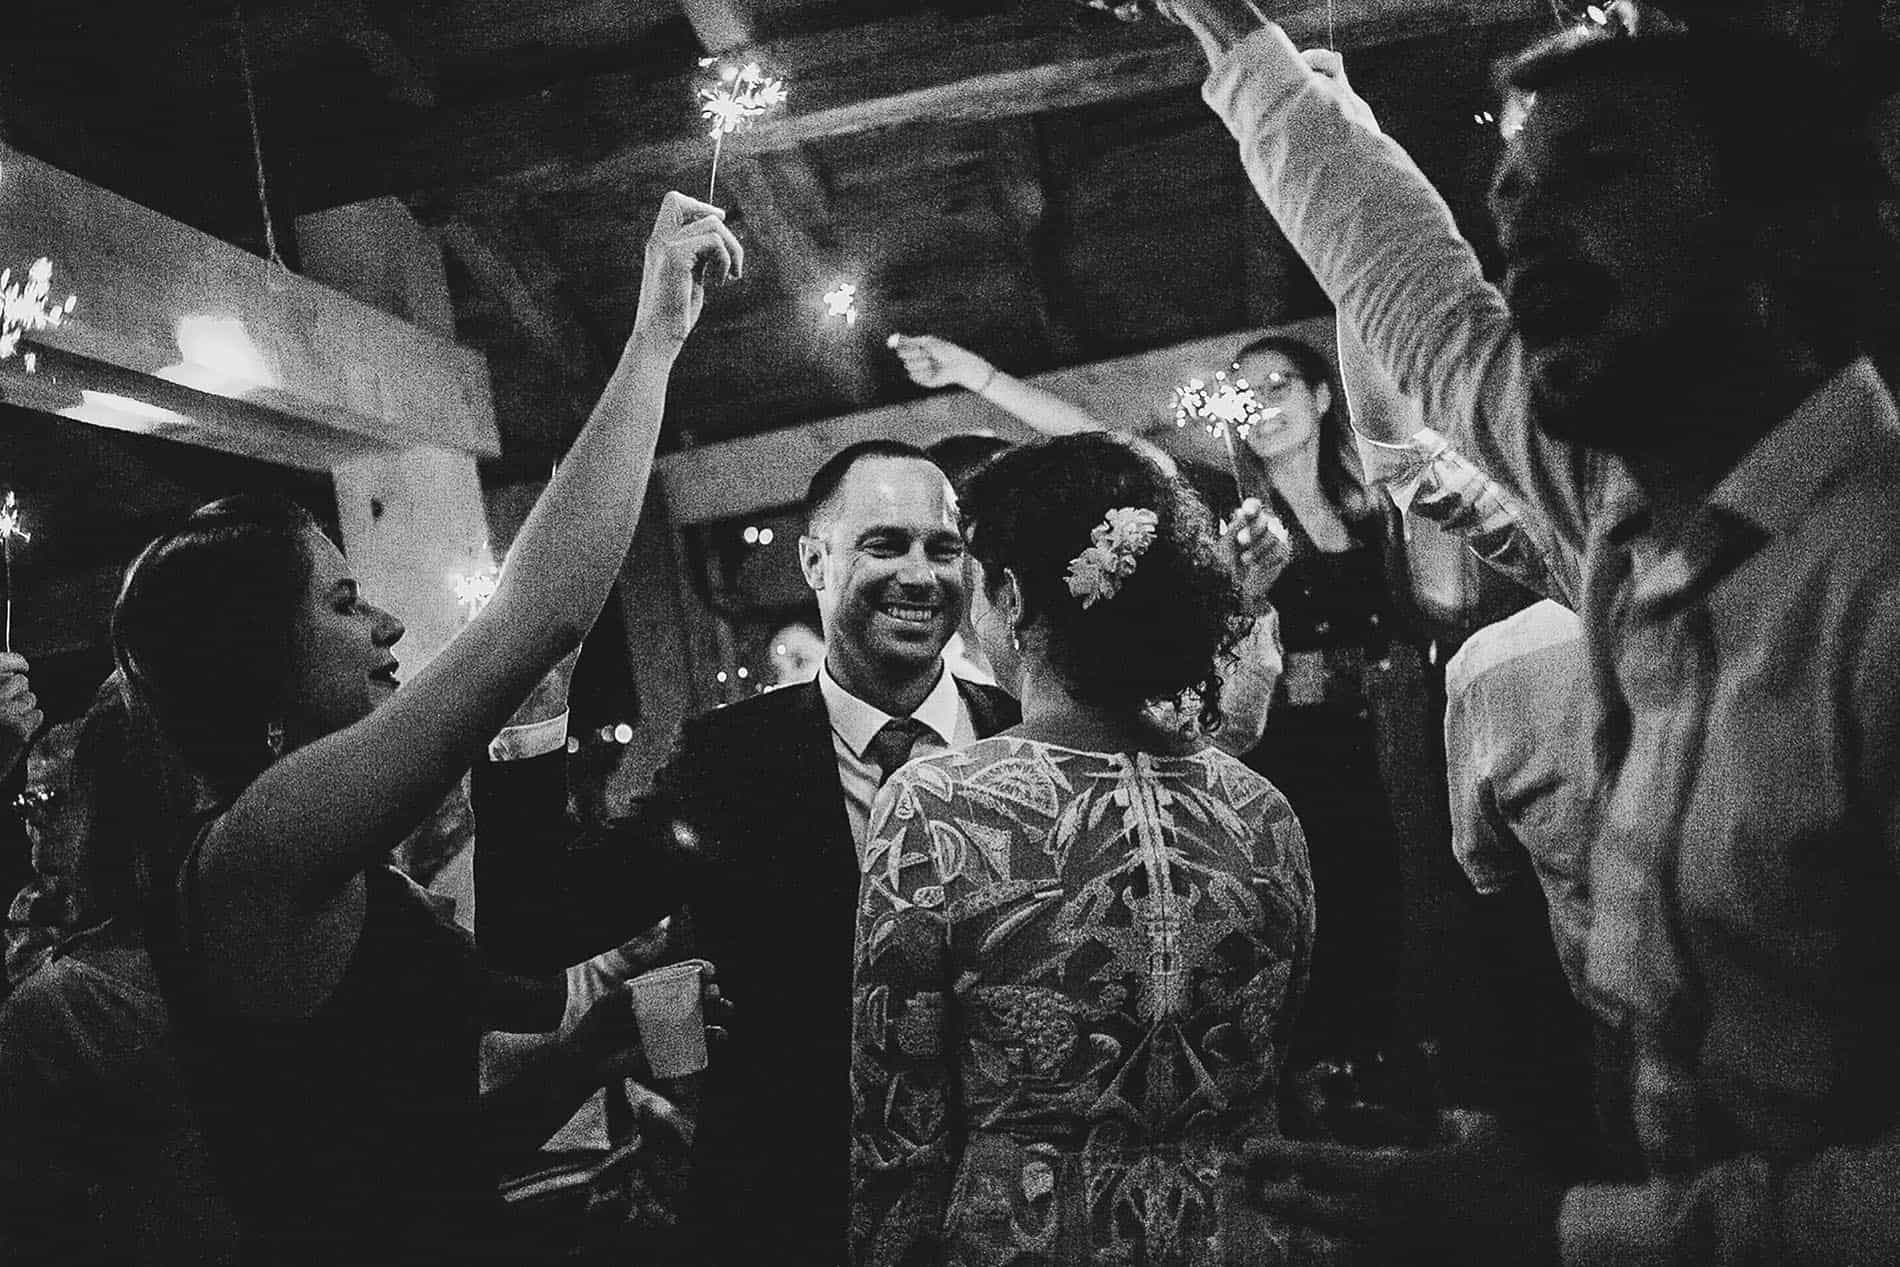 people dancing with sparkles surrounding bride and groom